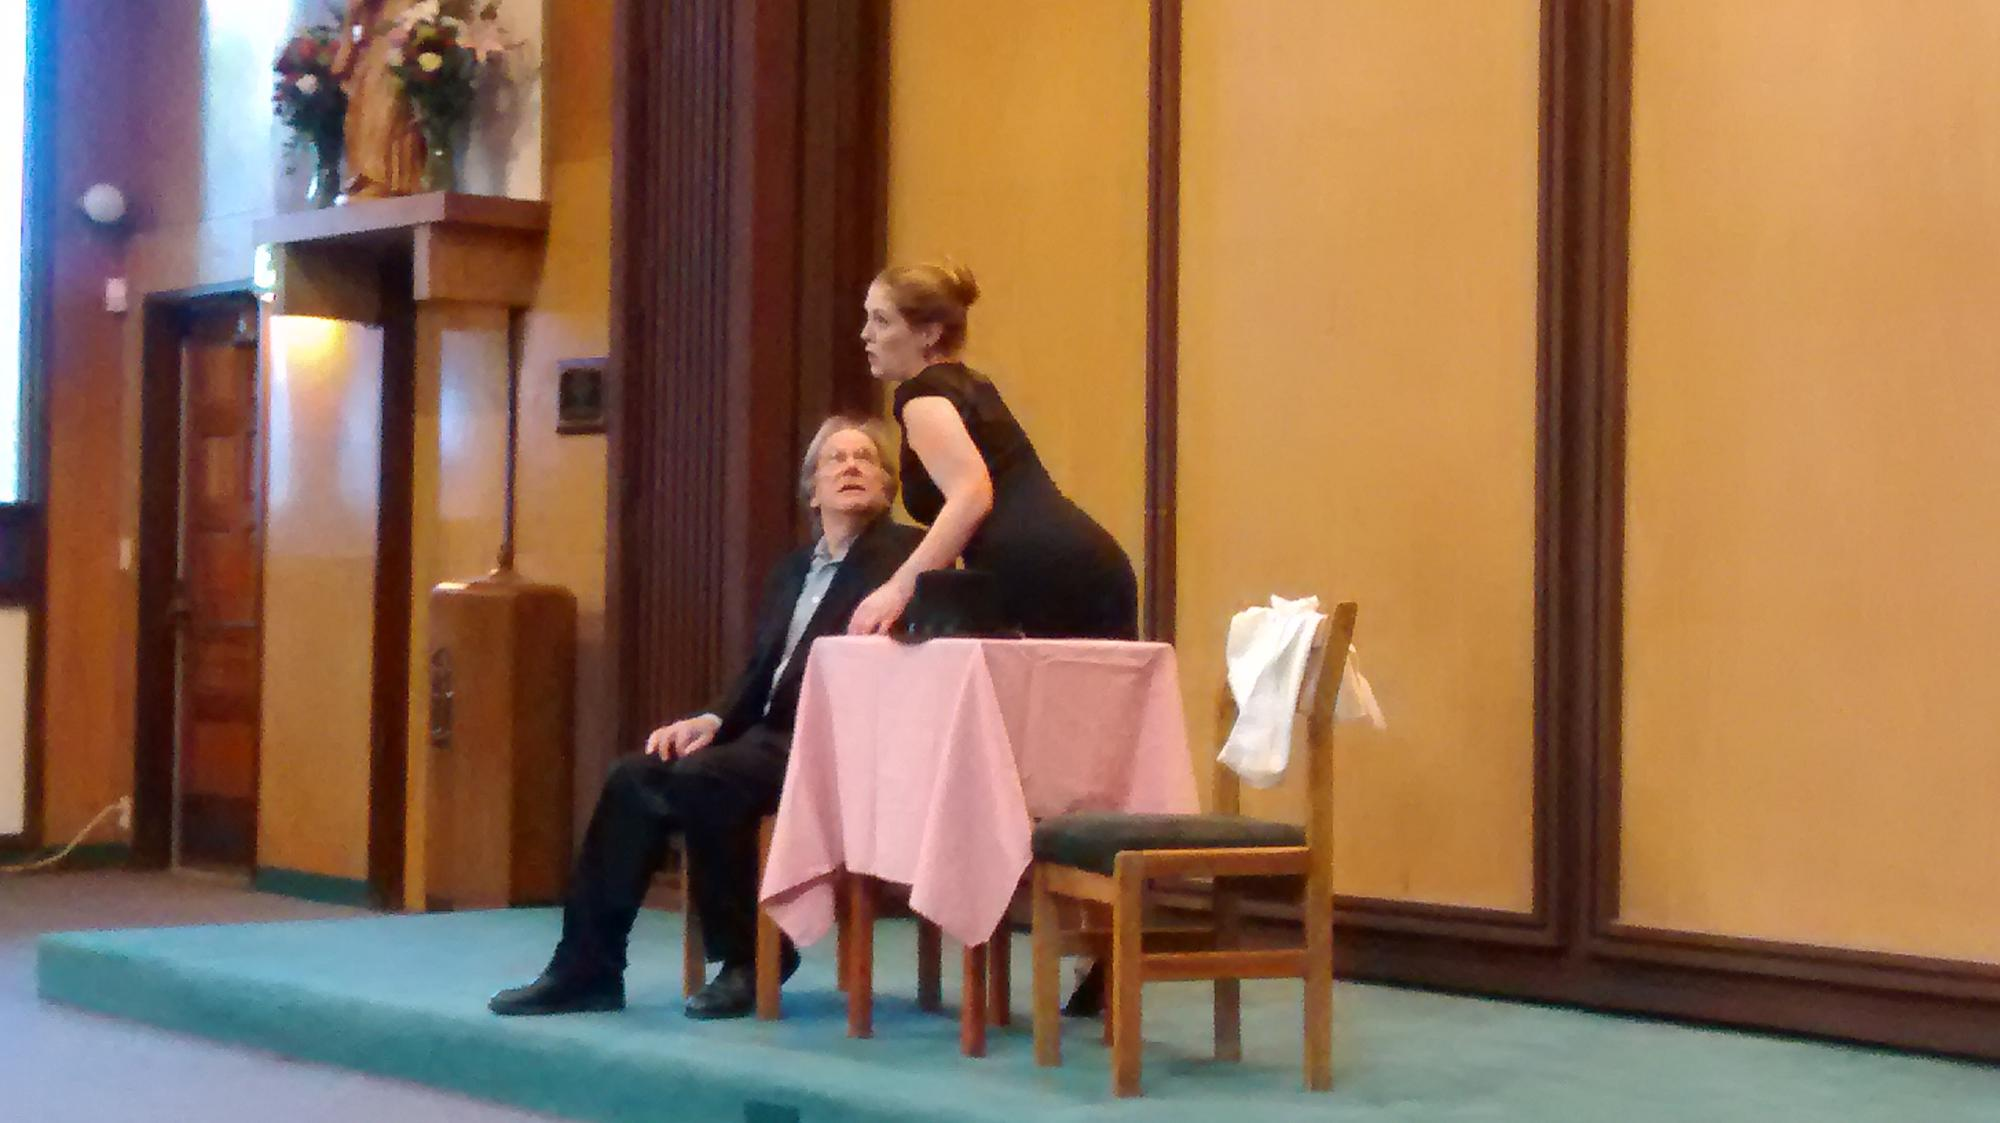 Serpina (Brooke Cagno) sings to Uberto (Sandy Naishtat).